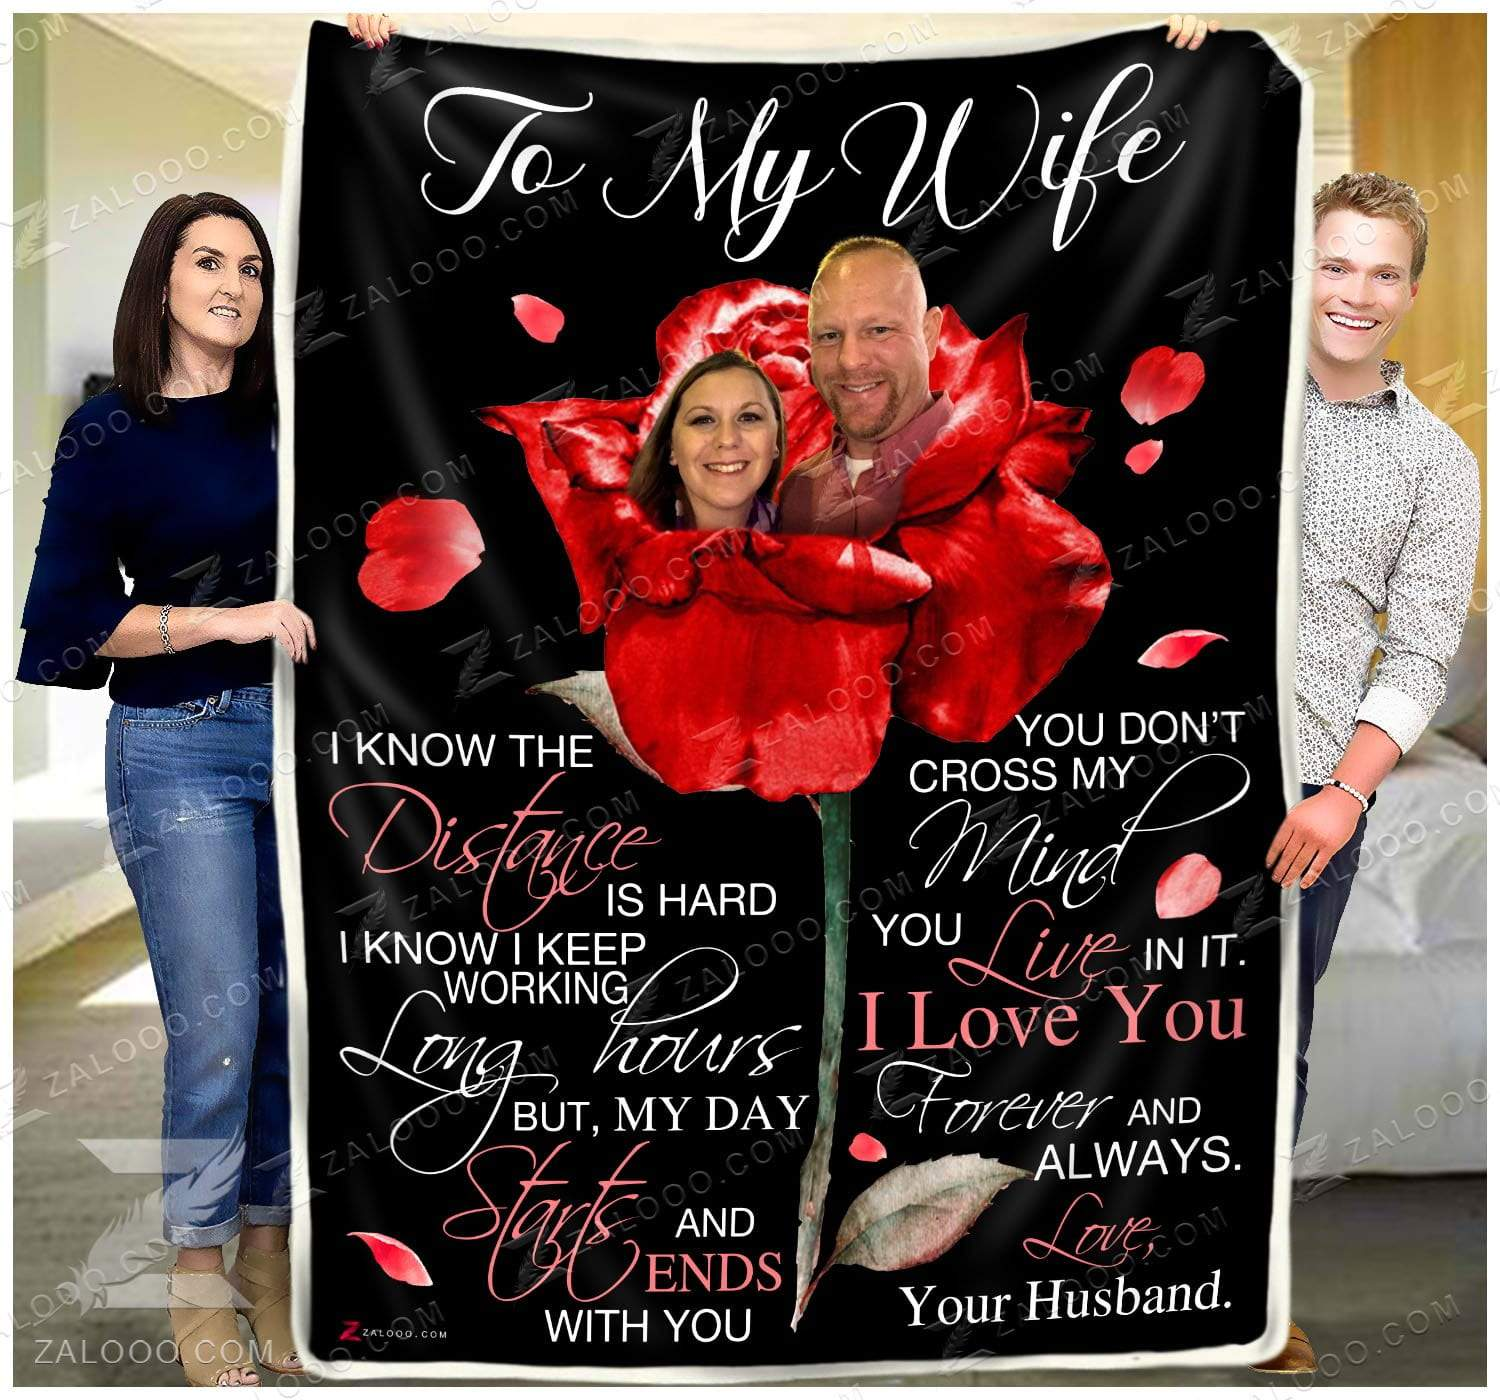 To my Wife - I know the distance Custom Quilt Blanket EP2757